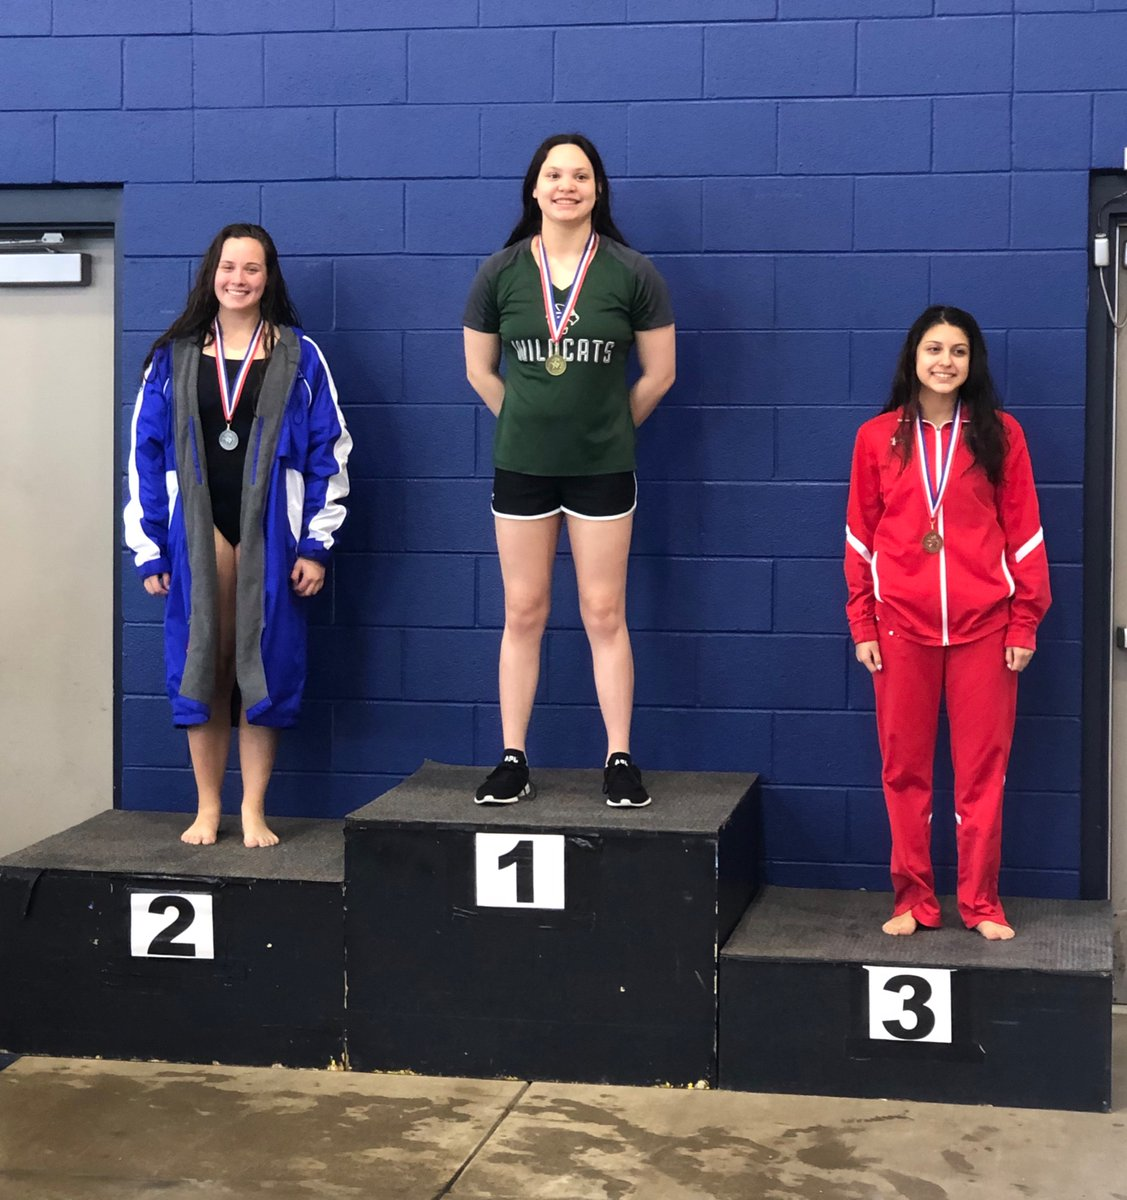 Alyssa Steinfeldt takes 2nd in District in the 100 Fly!